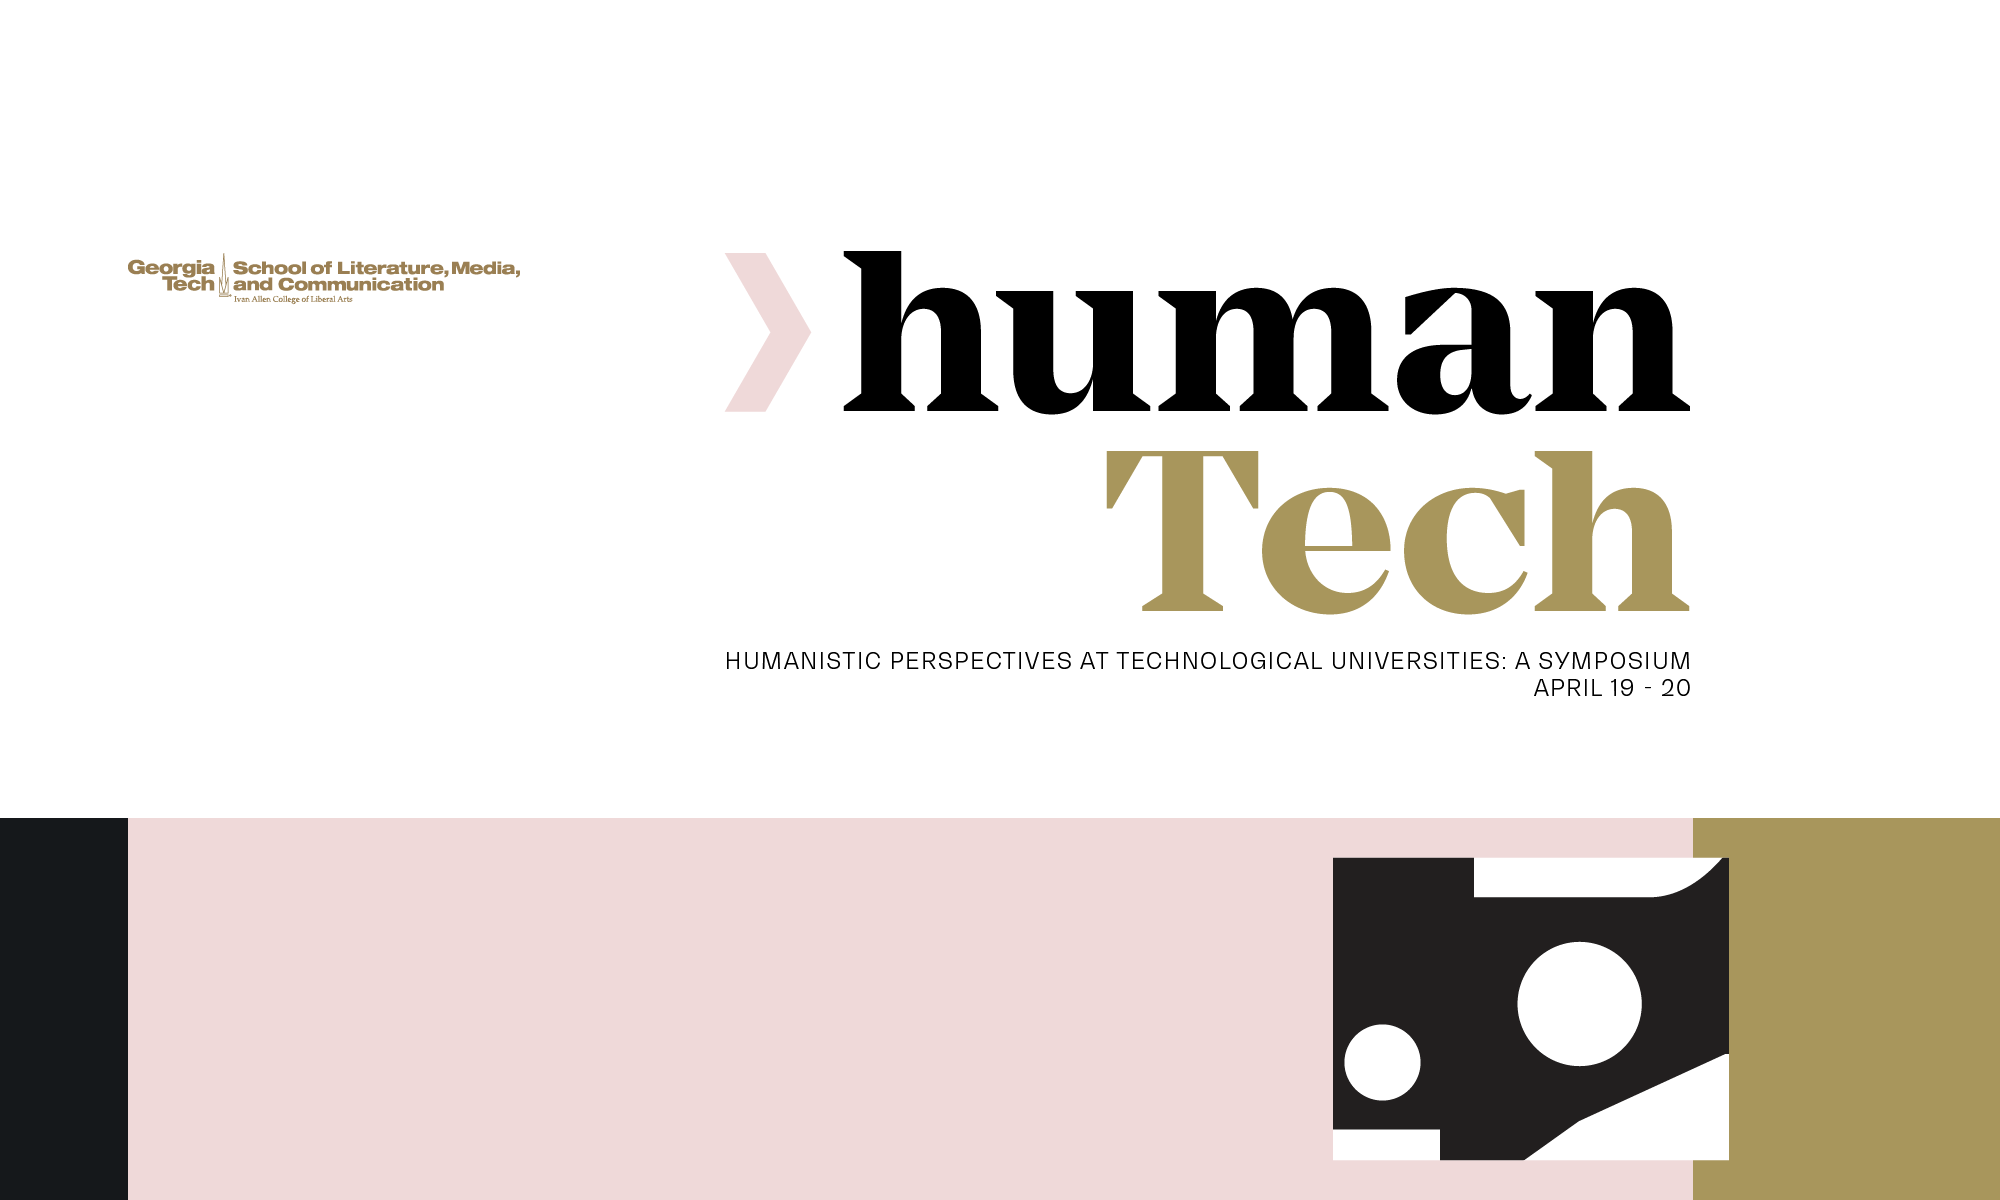 Humanistic Perspectives at Technological Universities: A Symposium